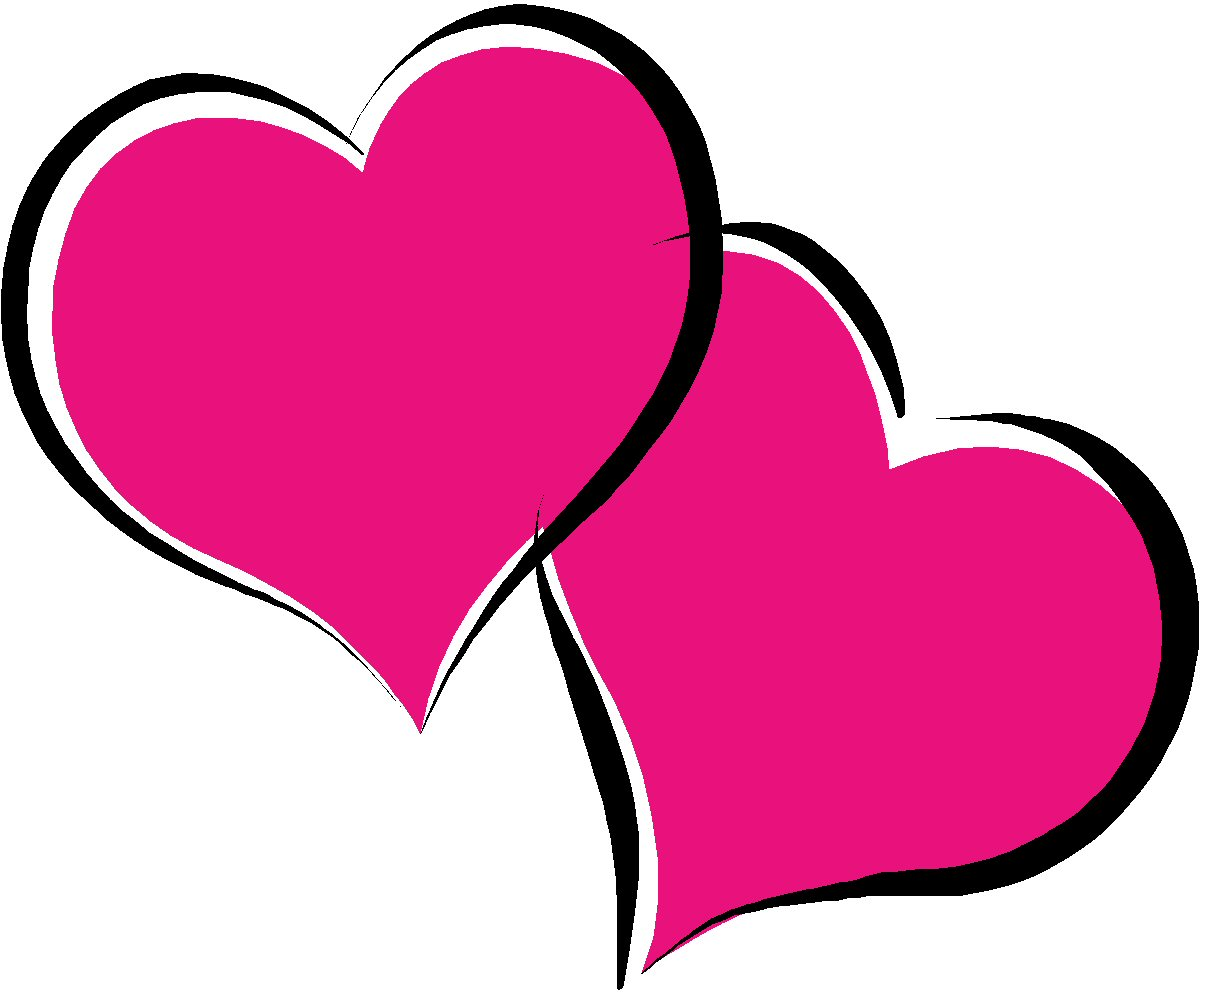 Microsoft clipart heart picture free stock Free Free Valentine Heart Clipart, Download Free Clip Art, Free Clip ... picture free stock